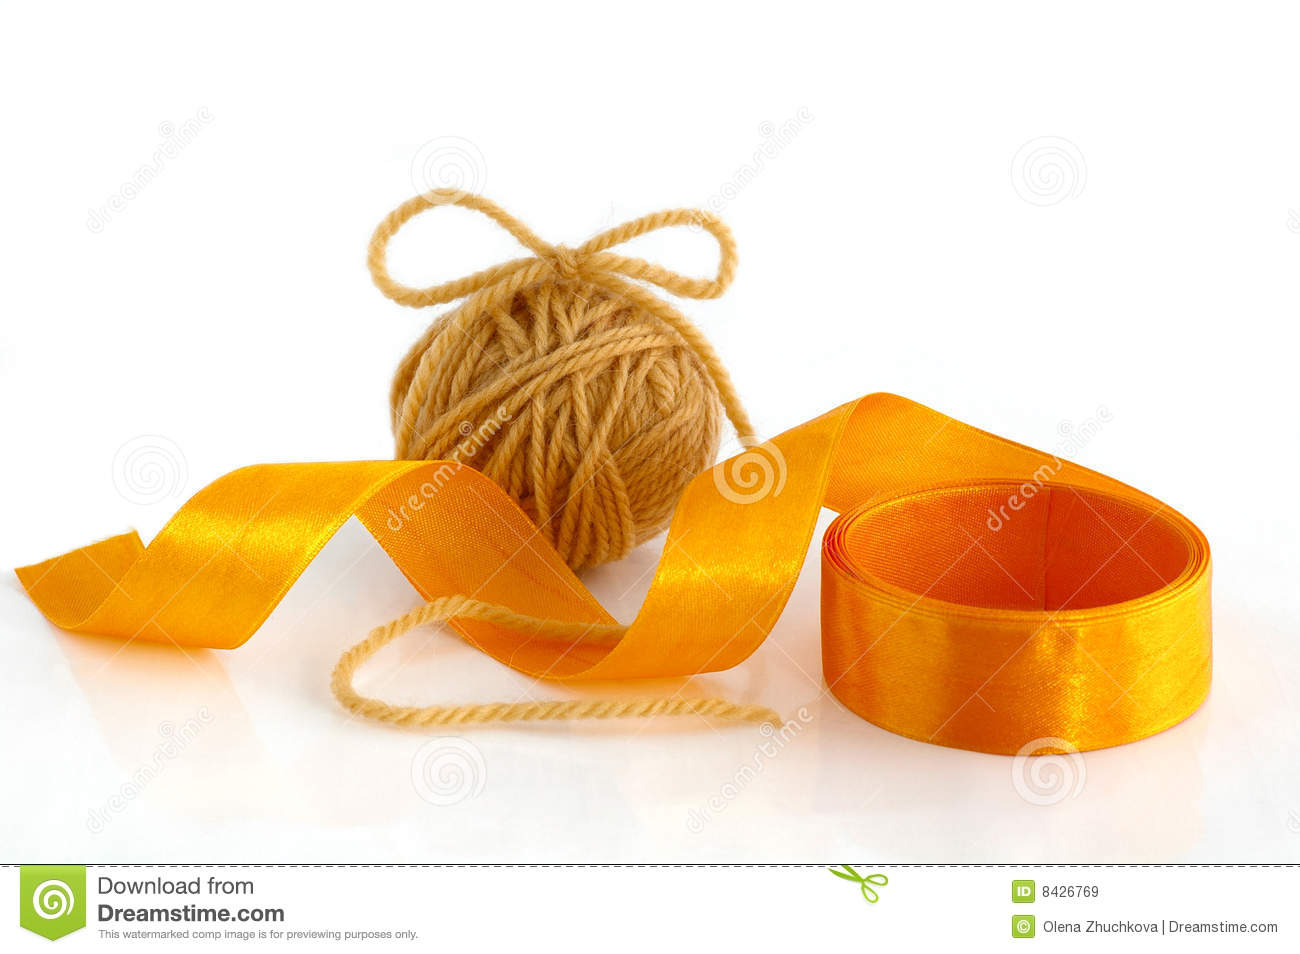 Yarn and ribbon